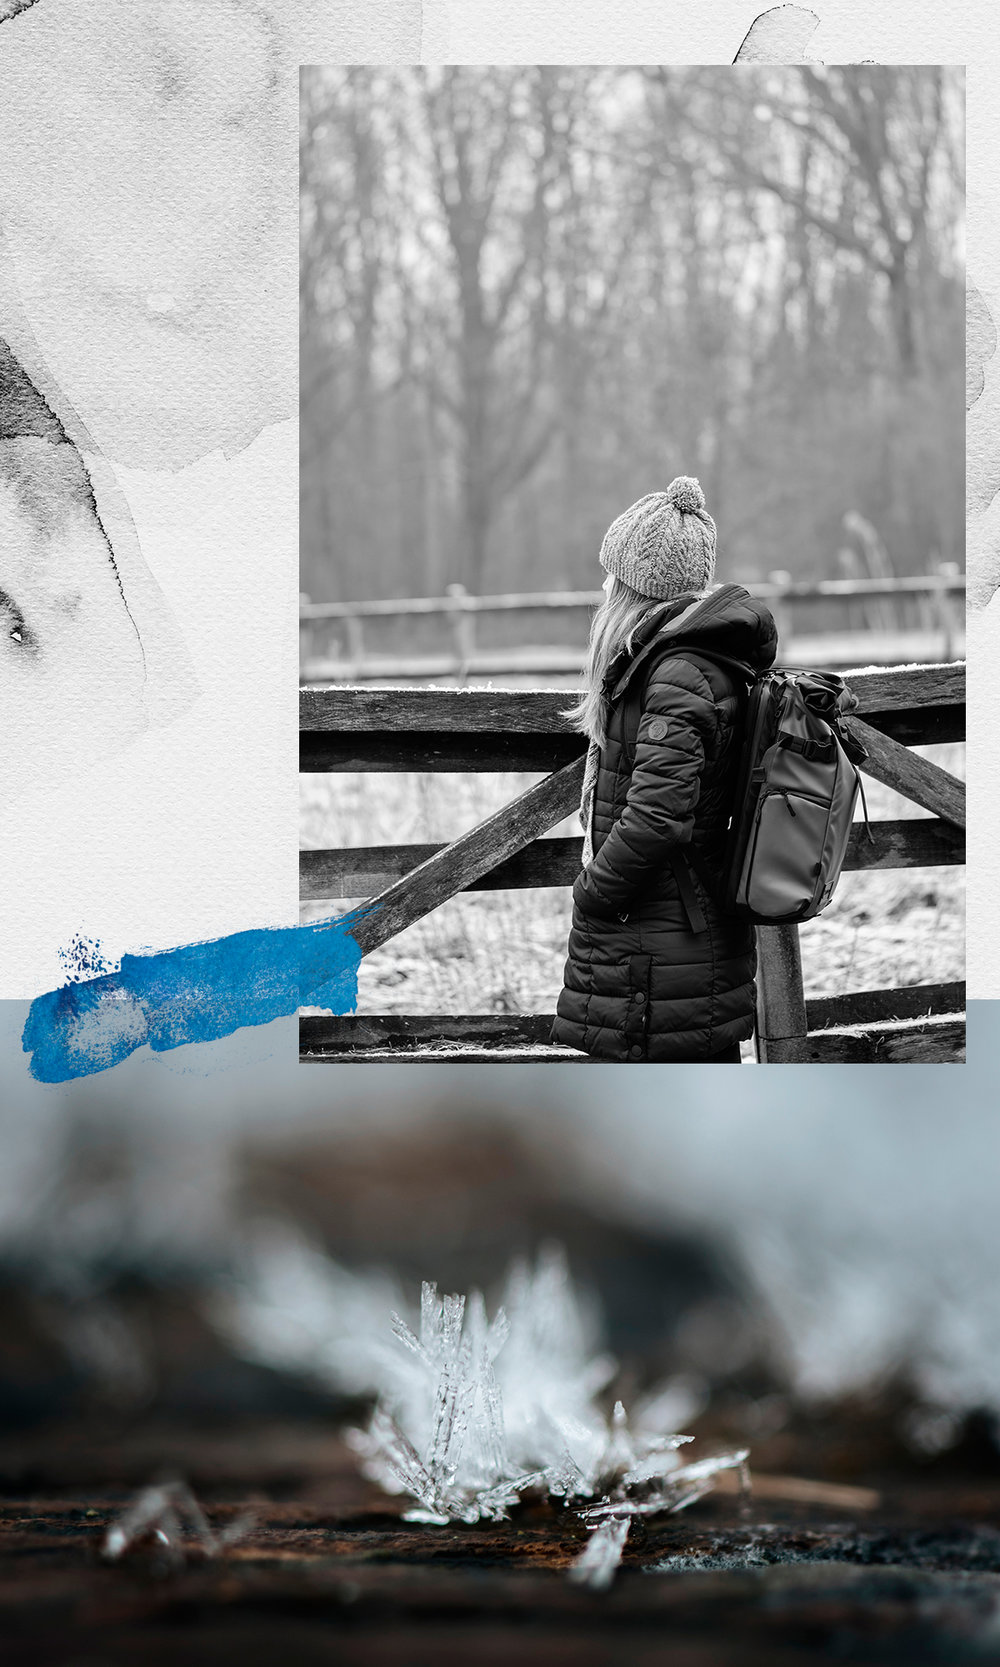 collage-macro-crystal-ice-portrait-winter-countryside-Patricia-Martins-Yellowish-2019